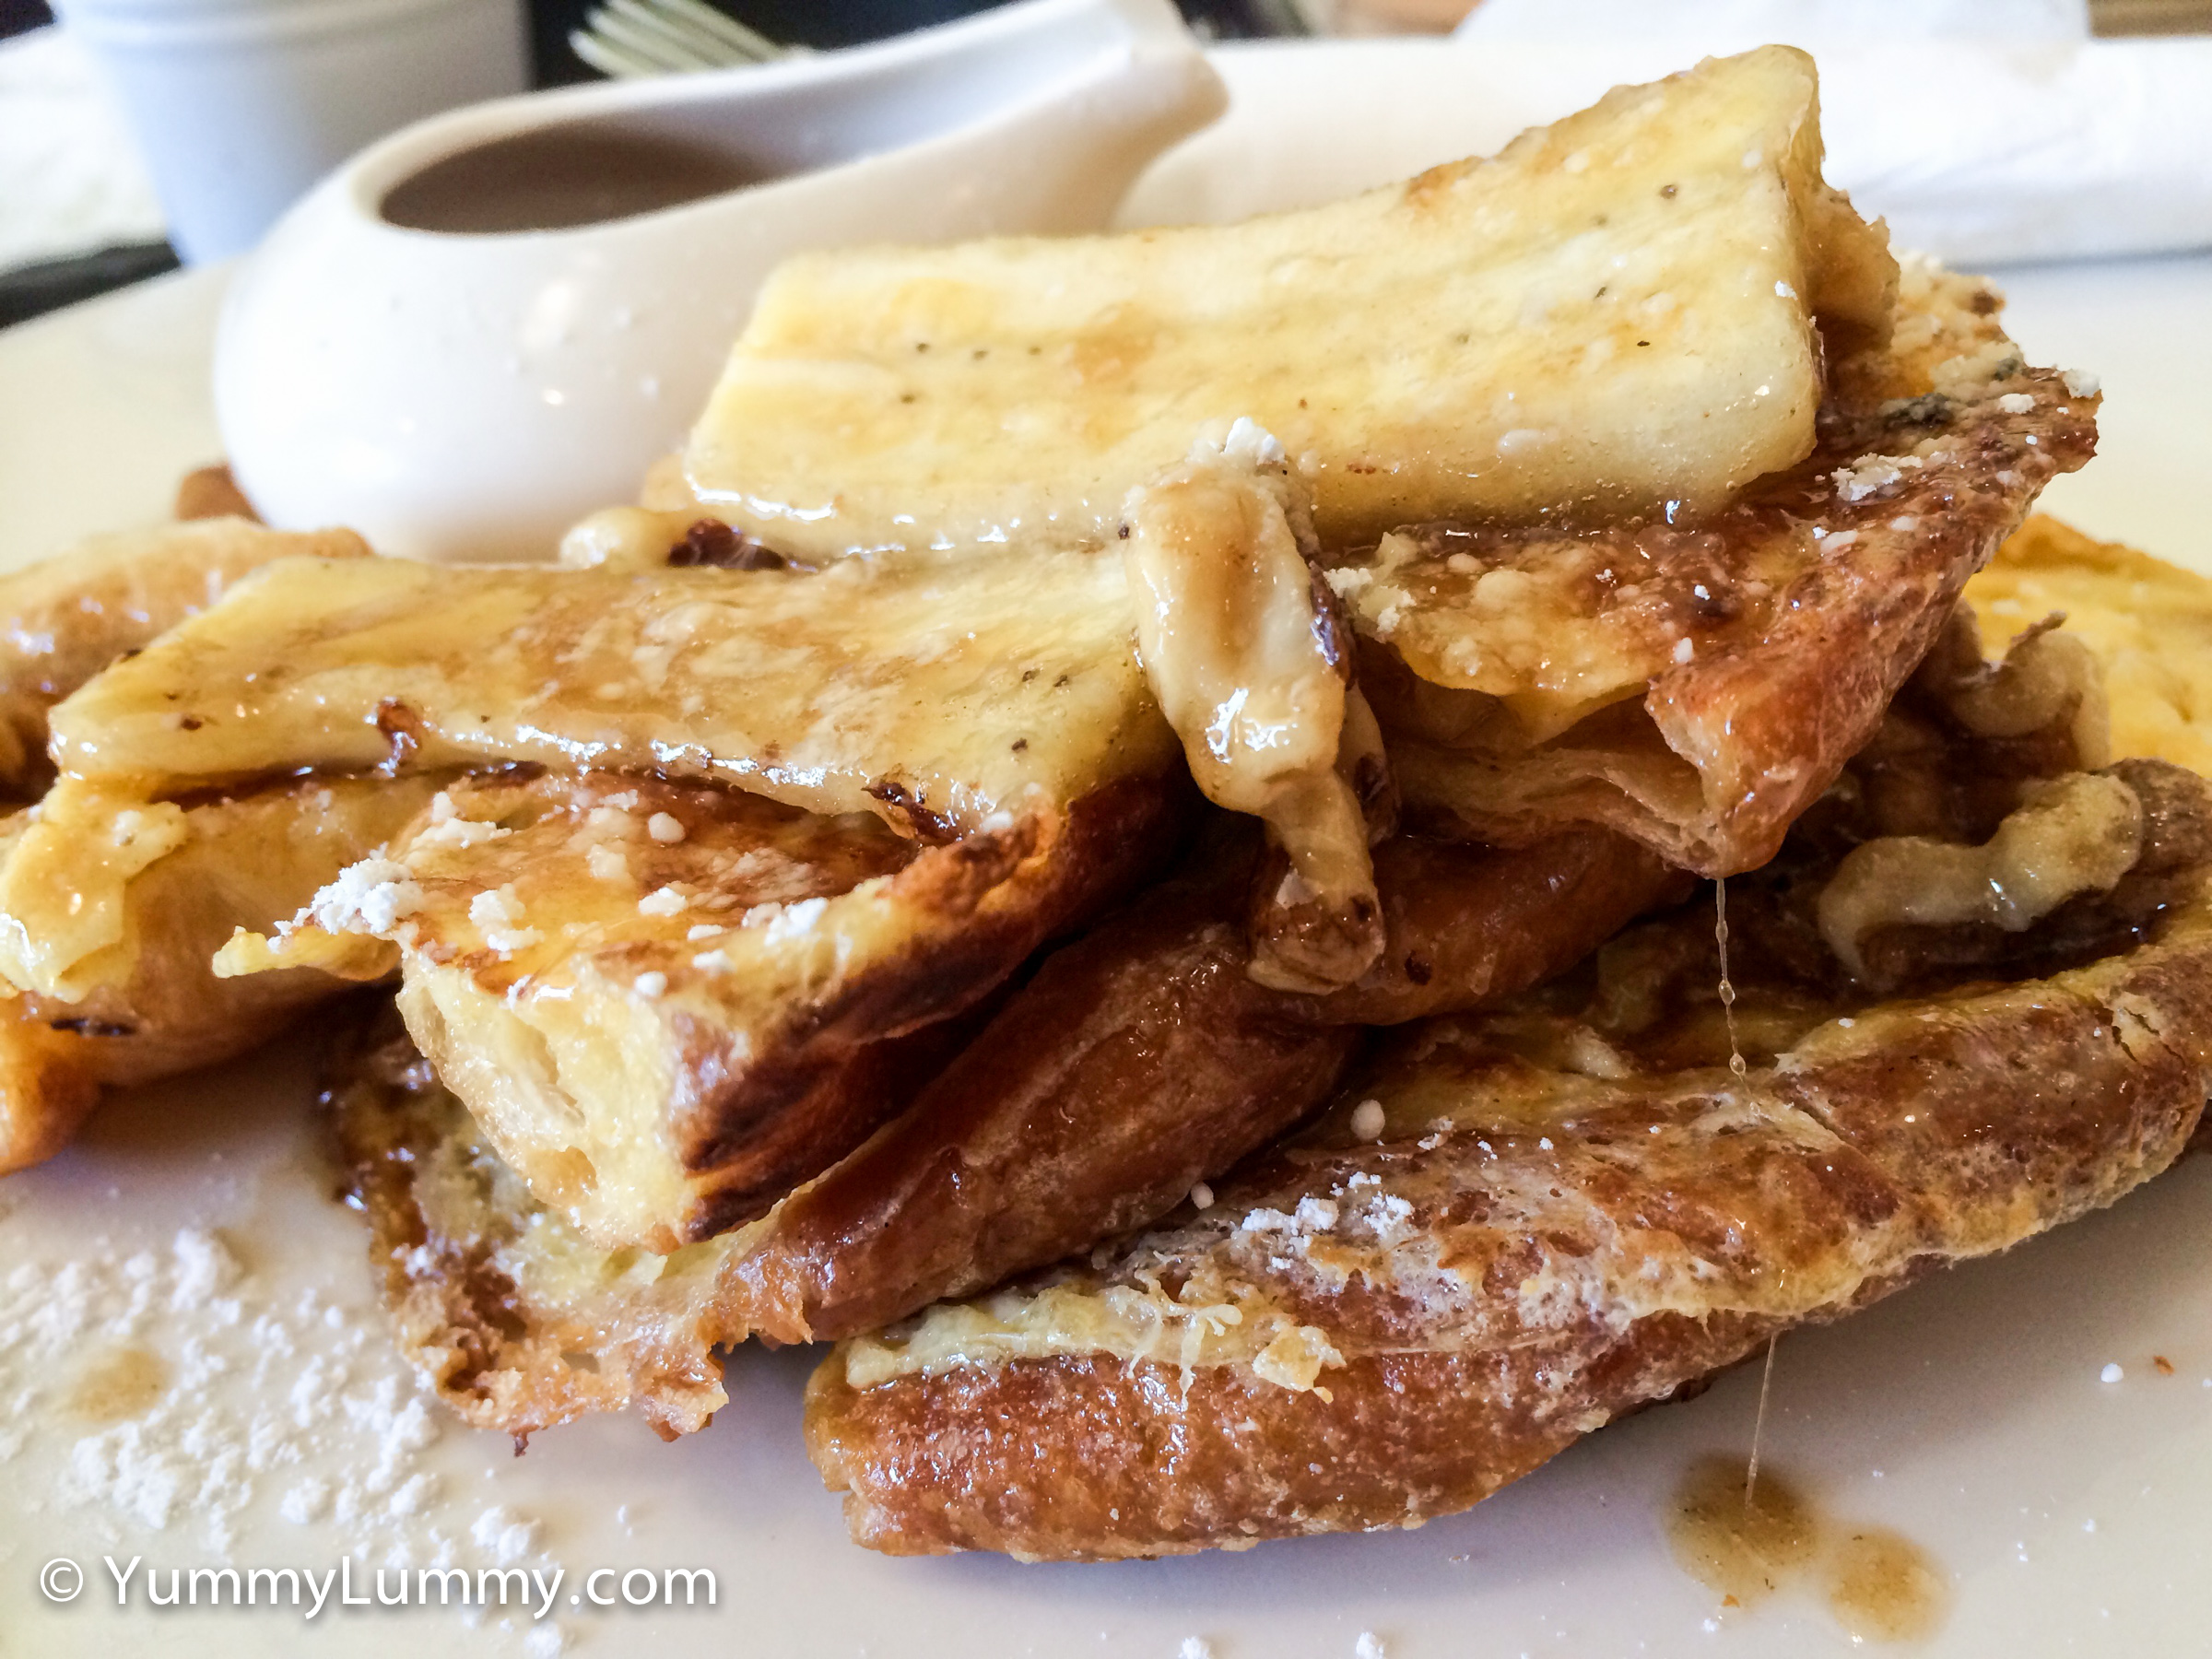 French toast with banana and maple syrup at U&Co Cafe